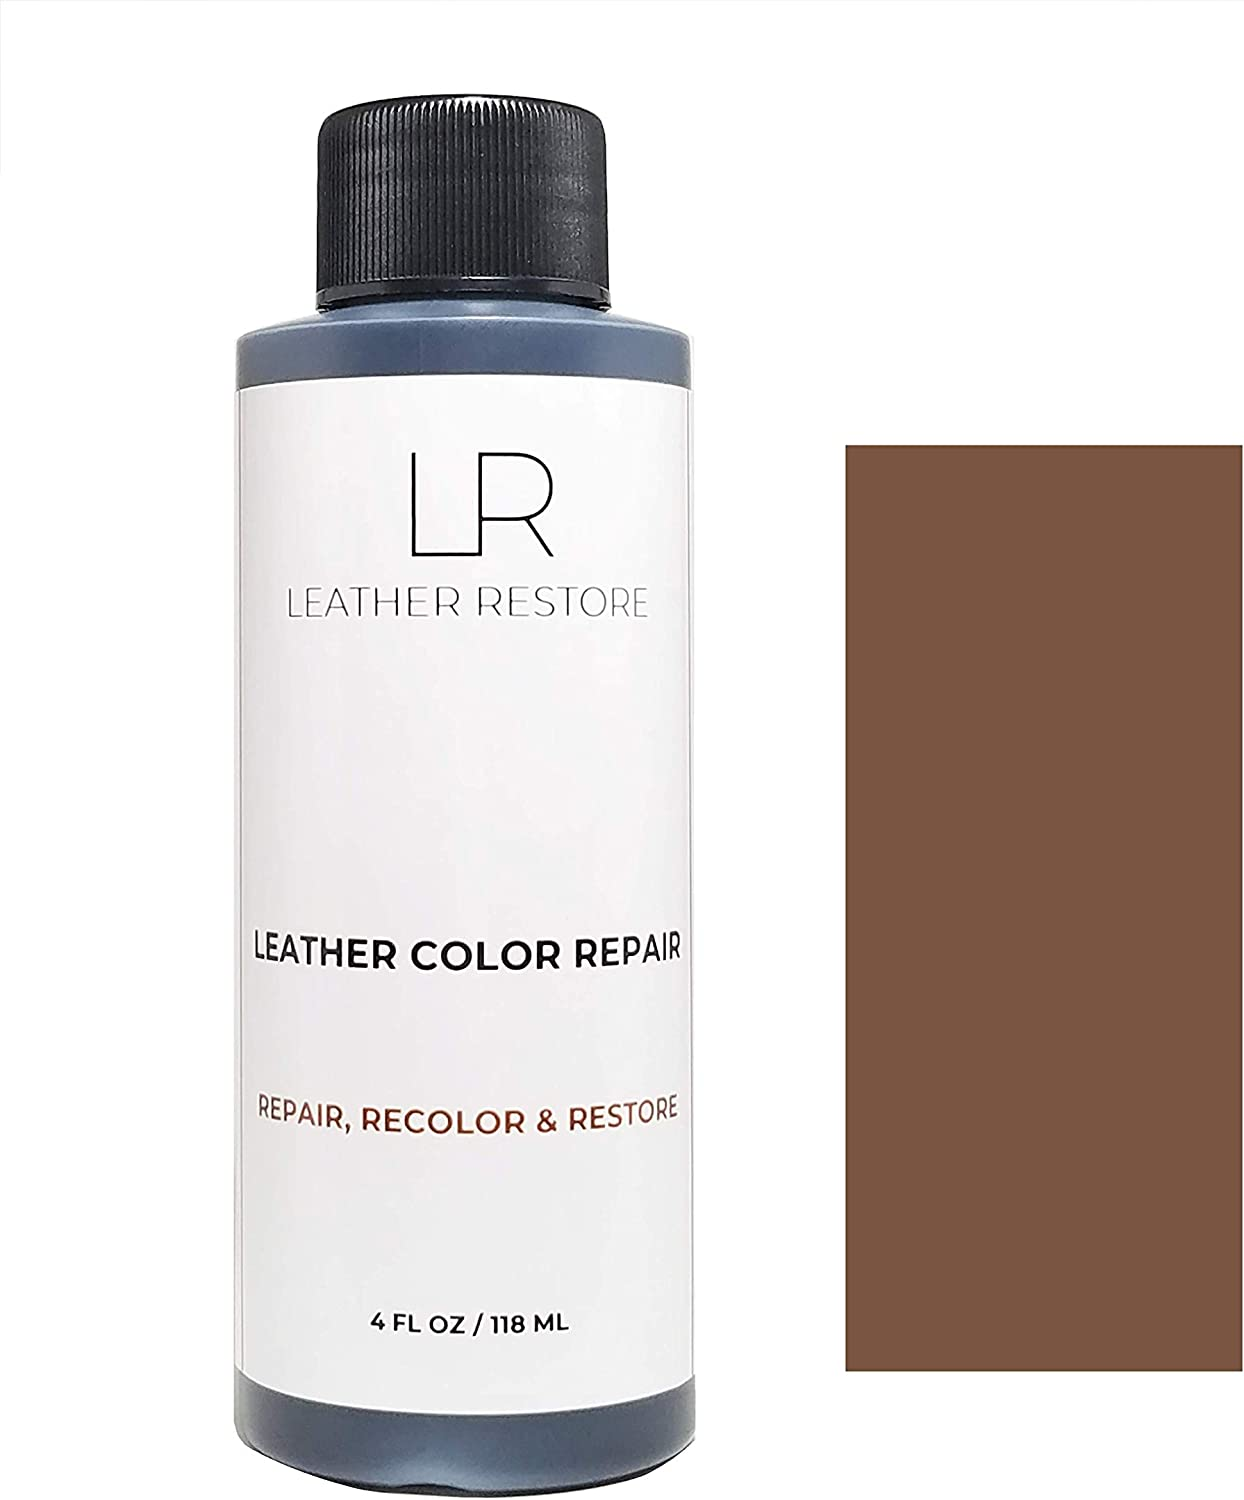 Leather Restore Leather Color Repair, Medium Brown 4 OZ - Repair, Recolor and Restore Couch, Furniture, Auto Interior, Car Seats, Vinyl and Shoes